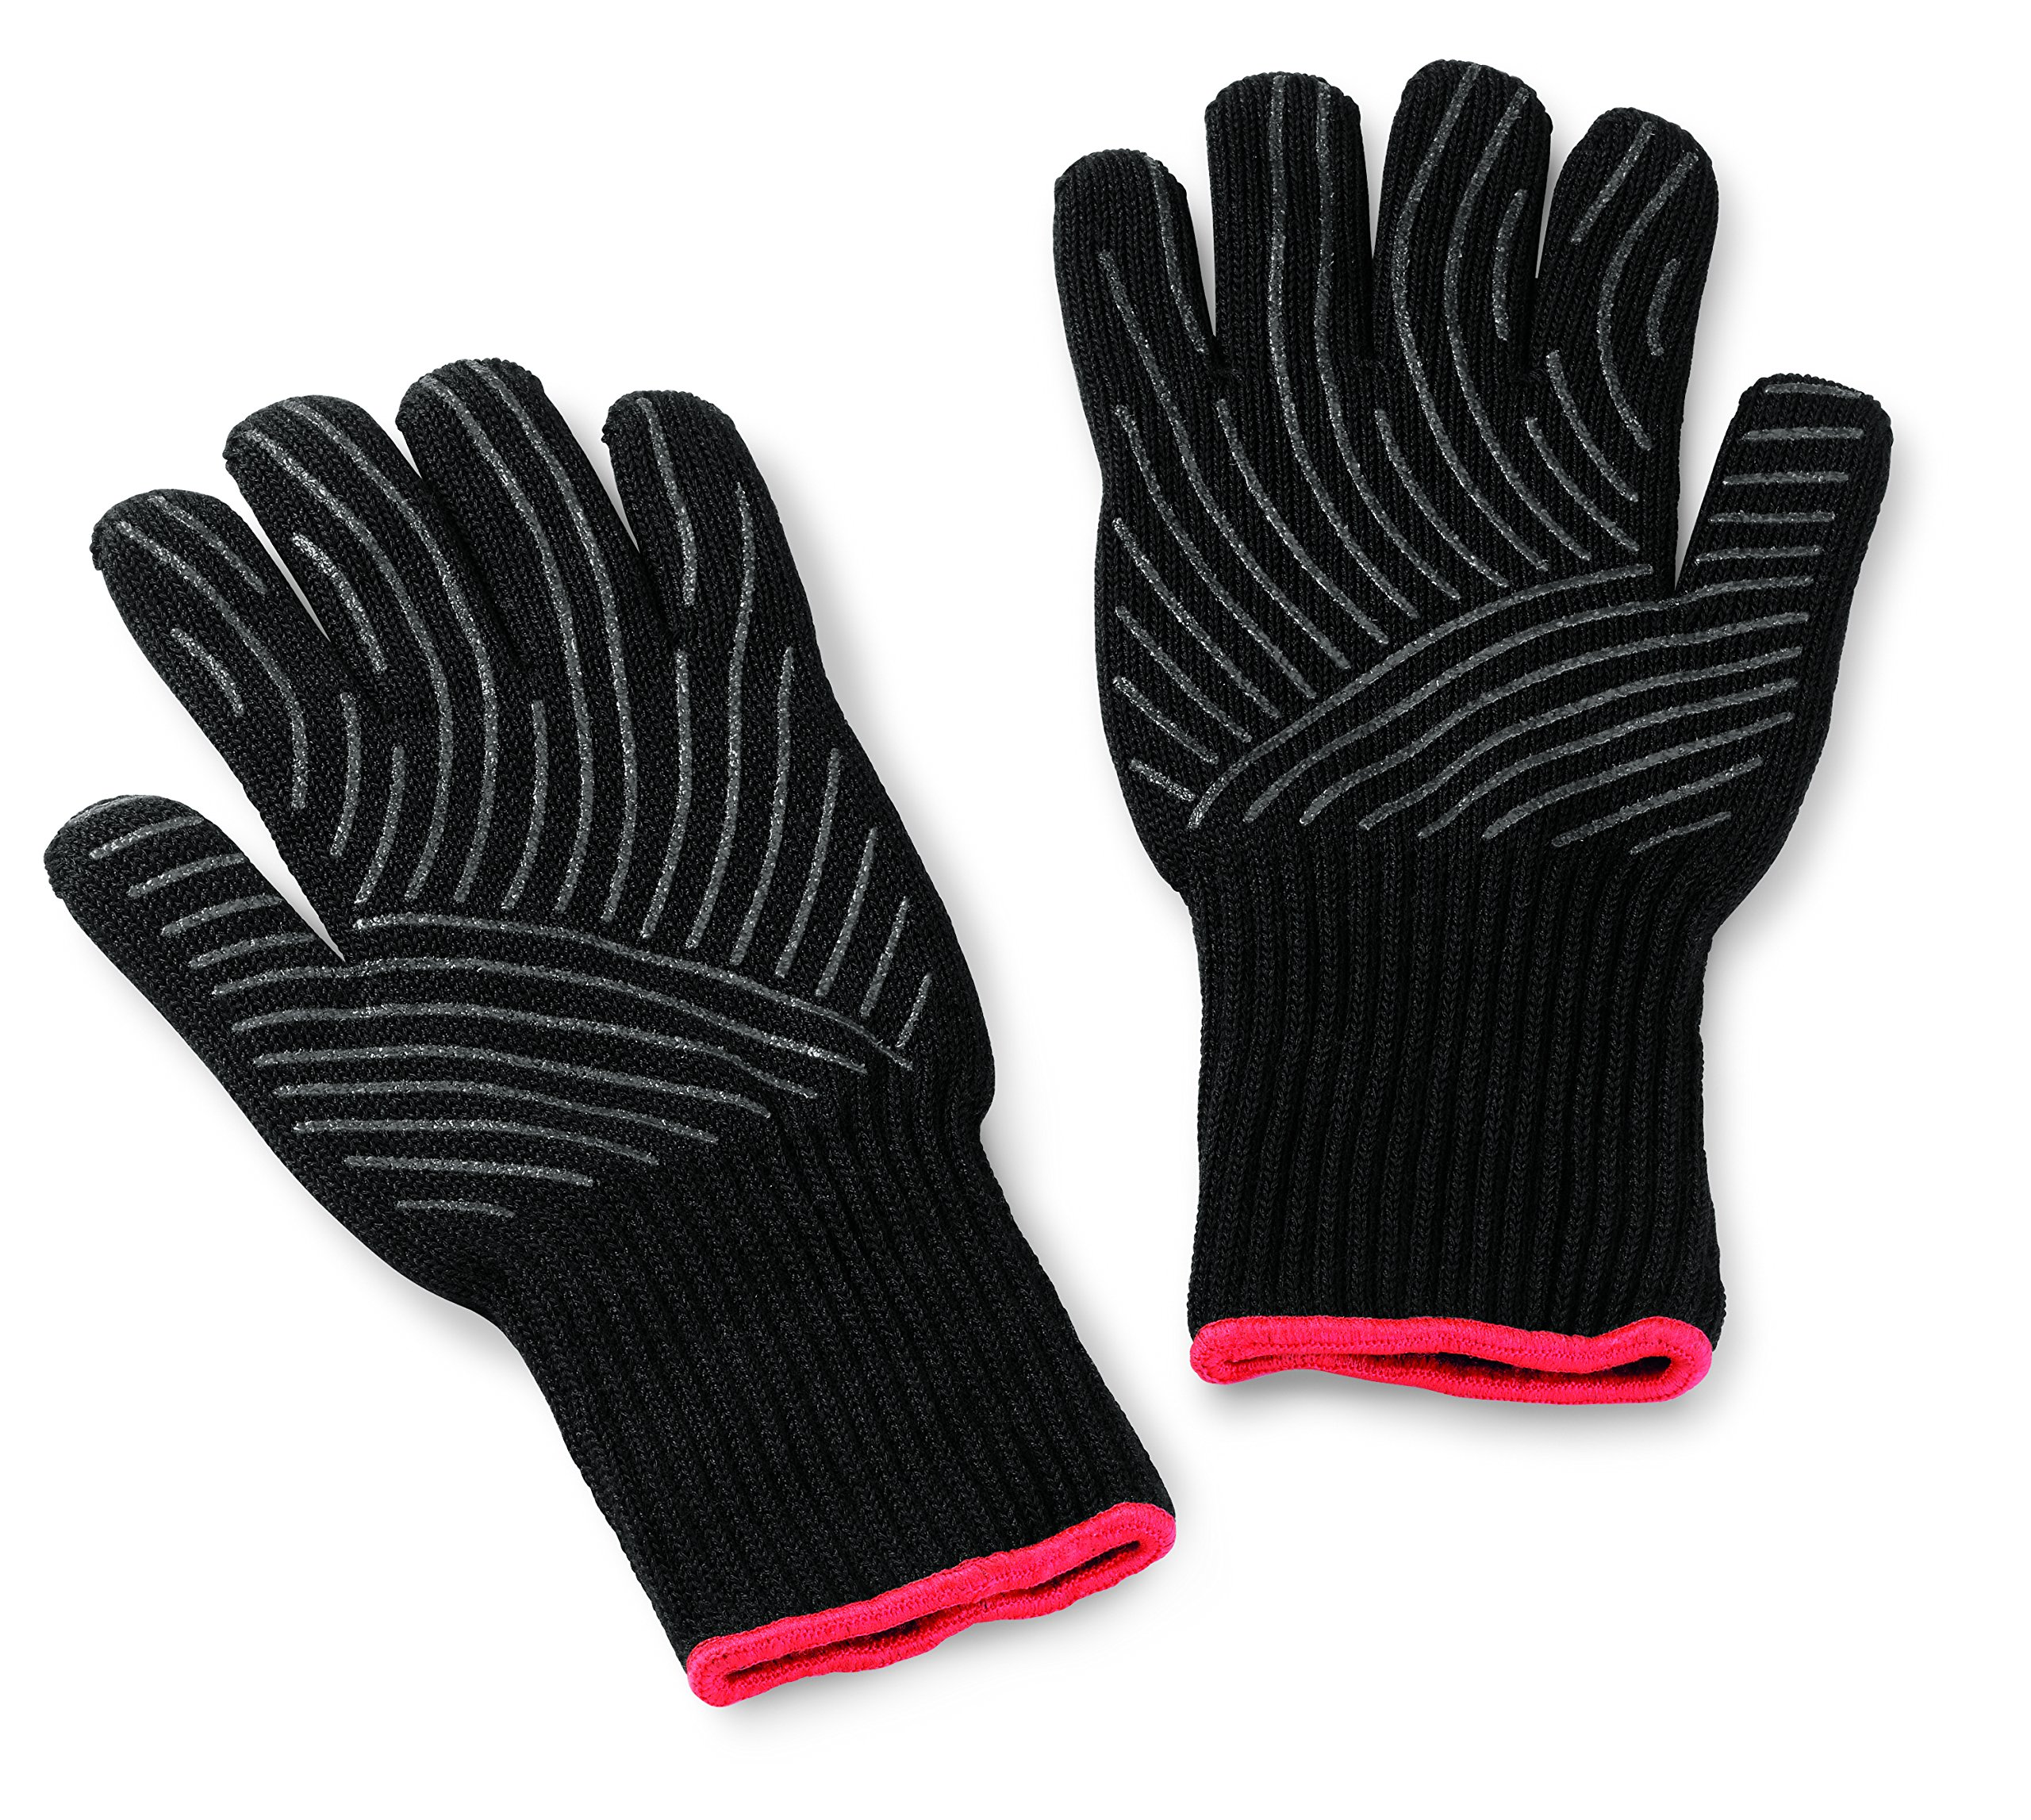 Weber 6535 Premium Black Grilling Gloves, L/XL by Weber